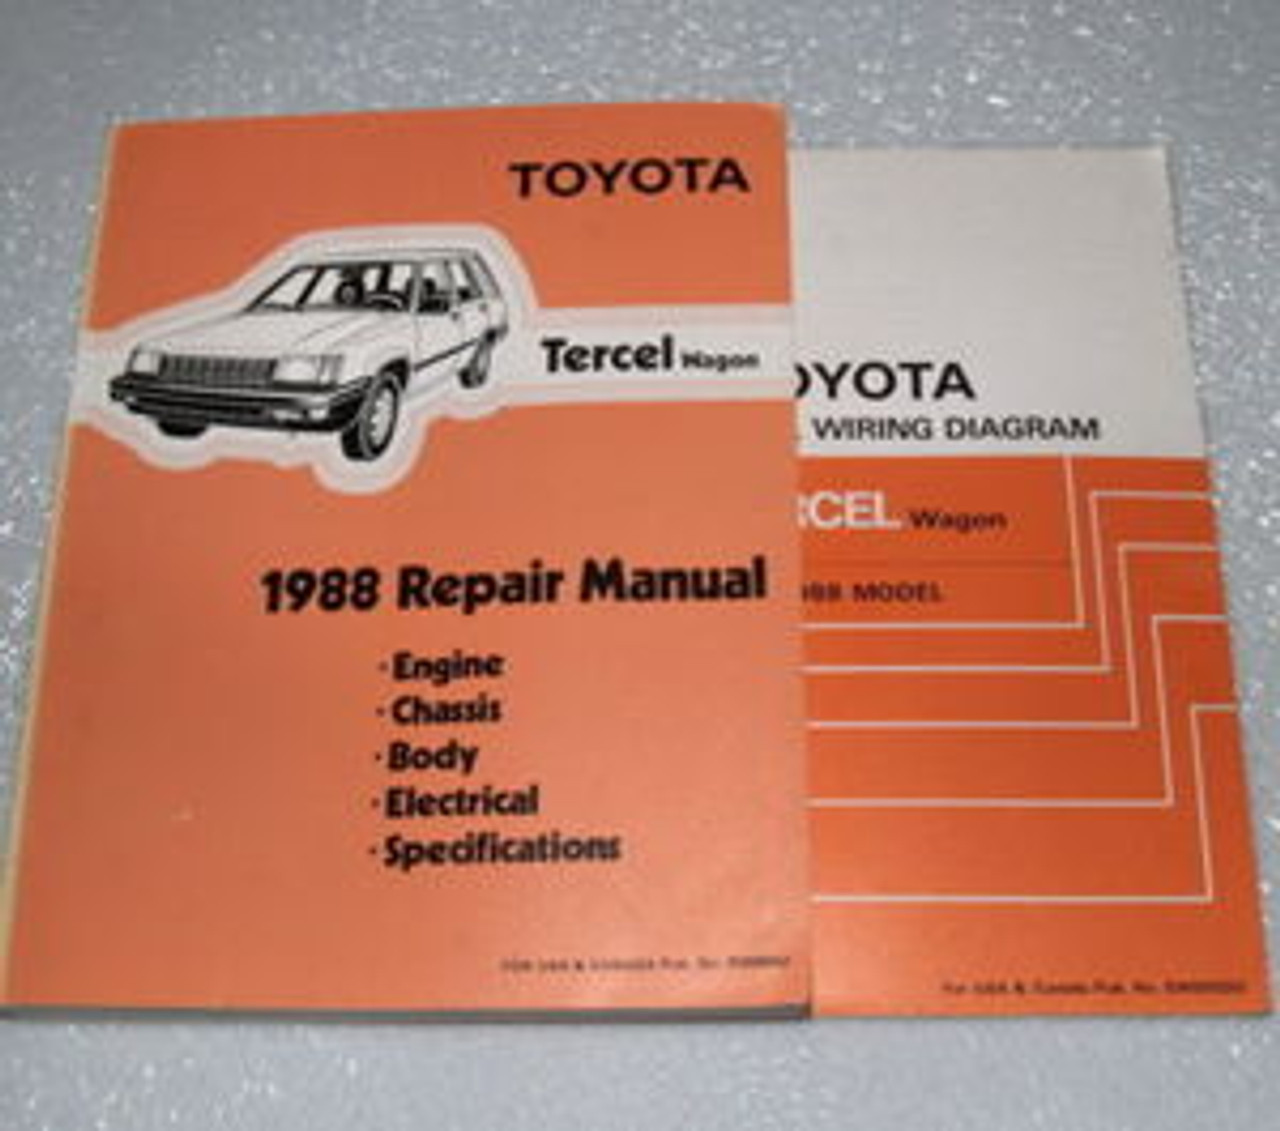 toyota tercel electrical diagram 1988 toyota tercel wagon factory shop service repair manual and  1988 toyota tercel wagon factory shop